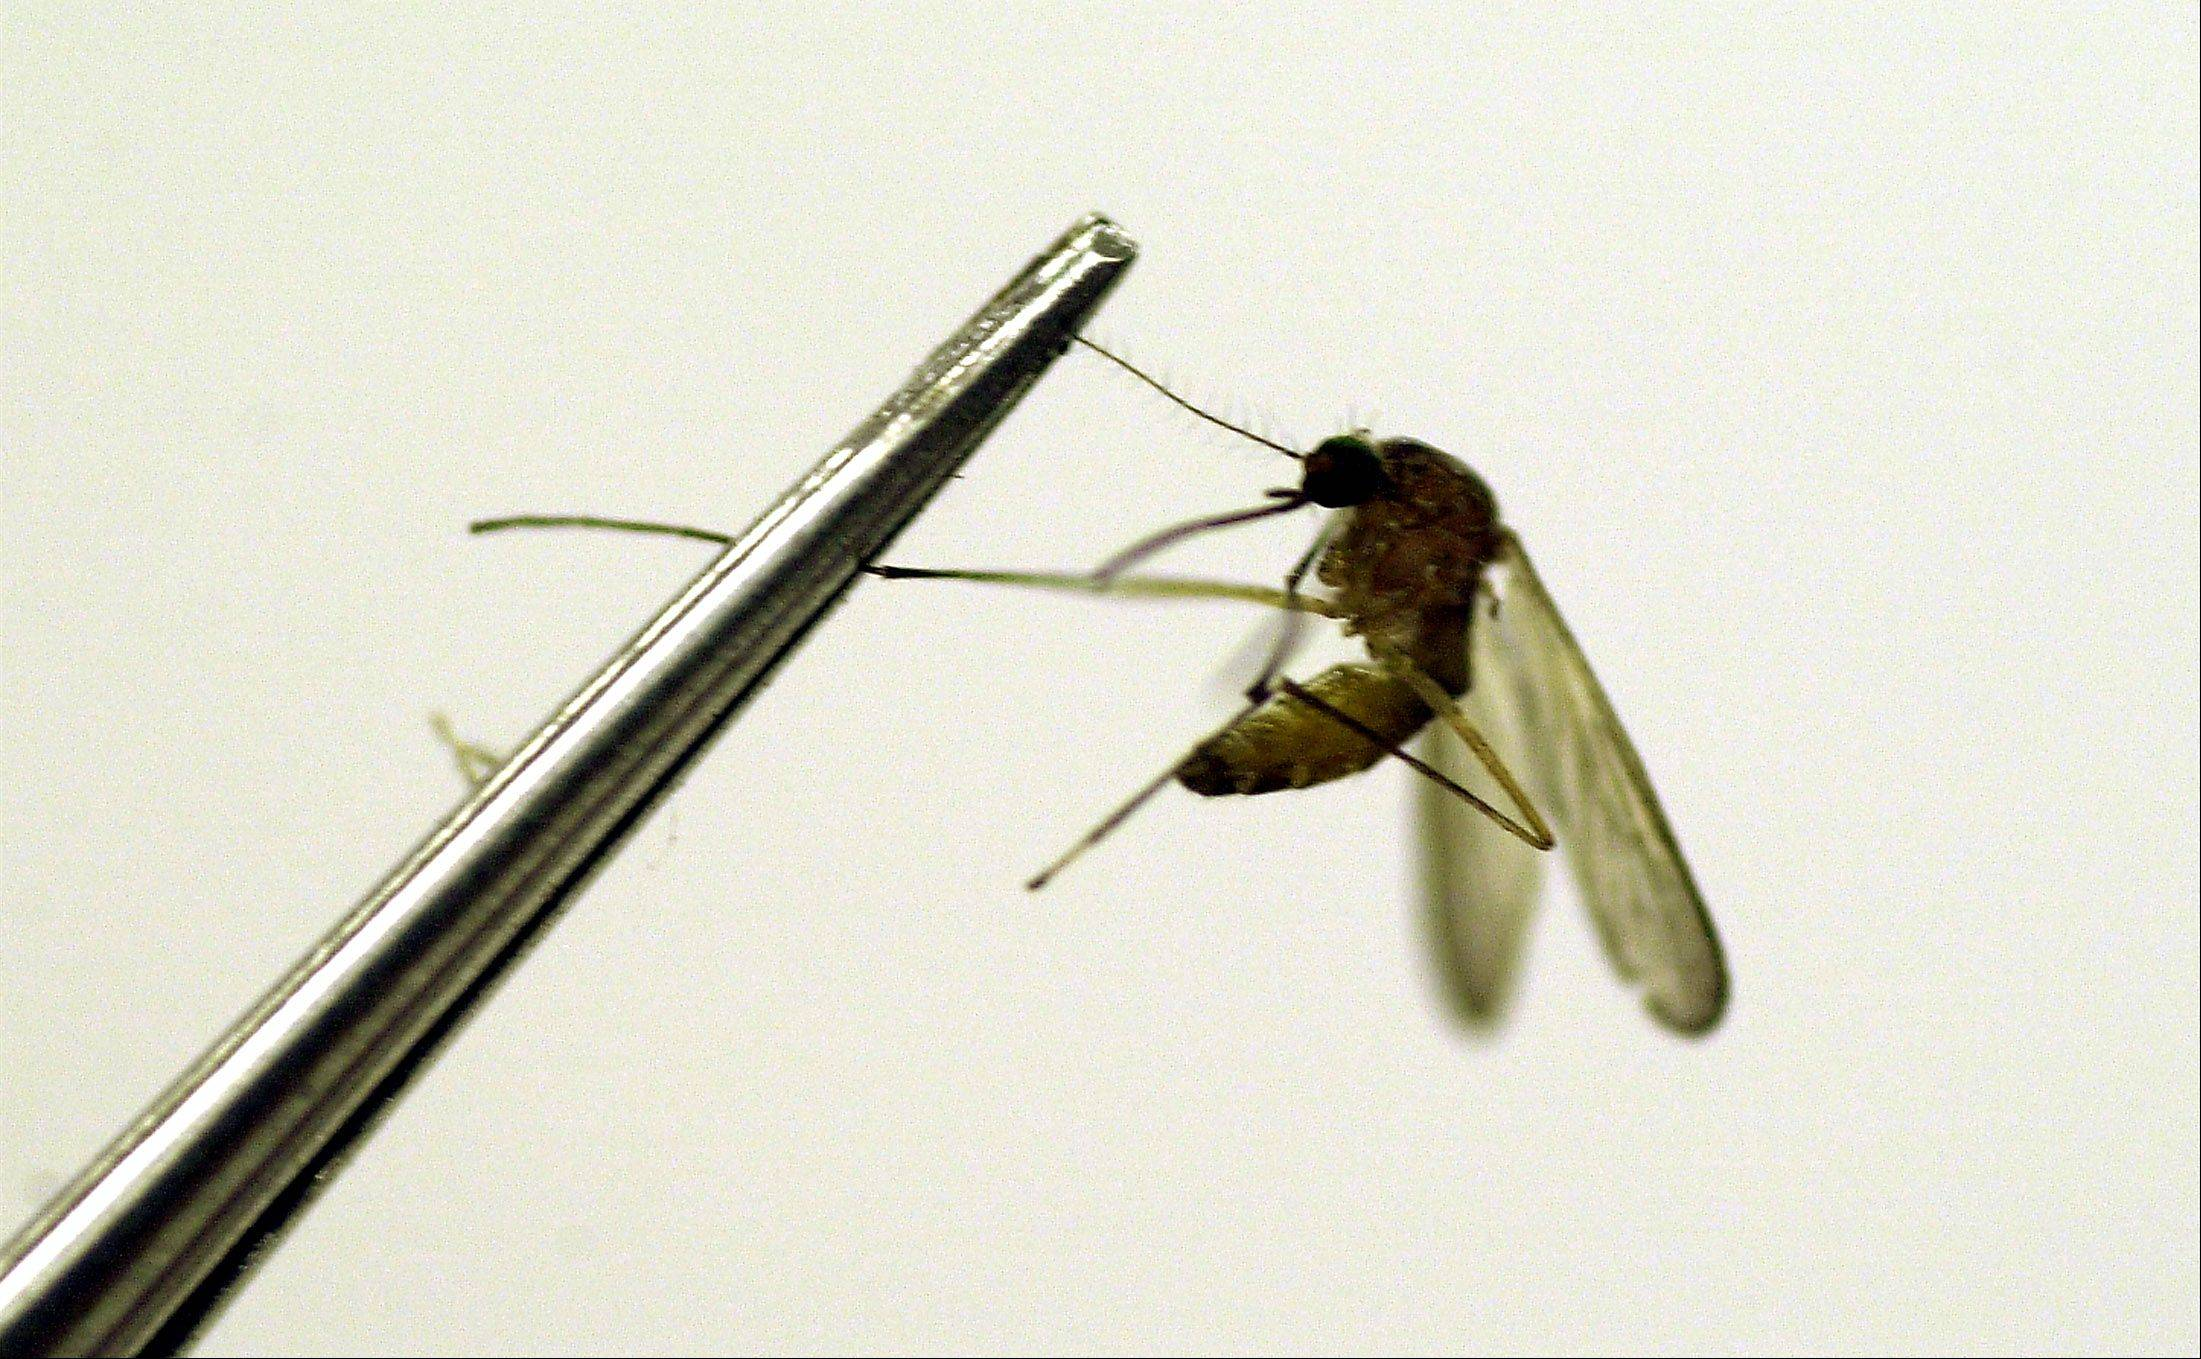 It's back -- a sampling of mosquitoes collected in Hillside tested positive for West Nile virus.